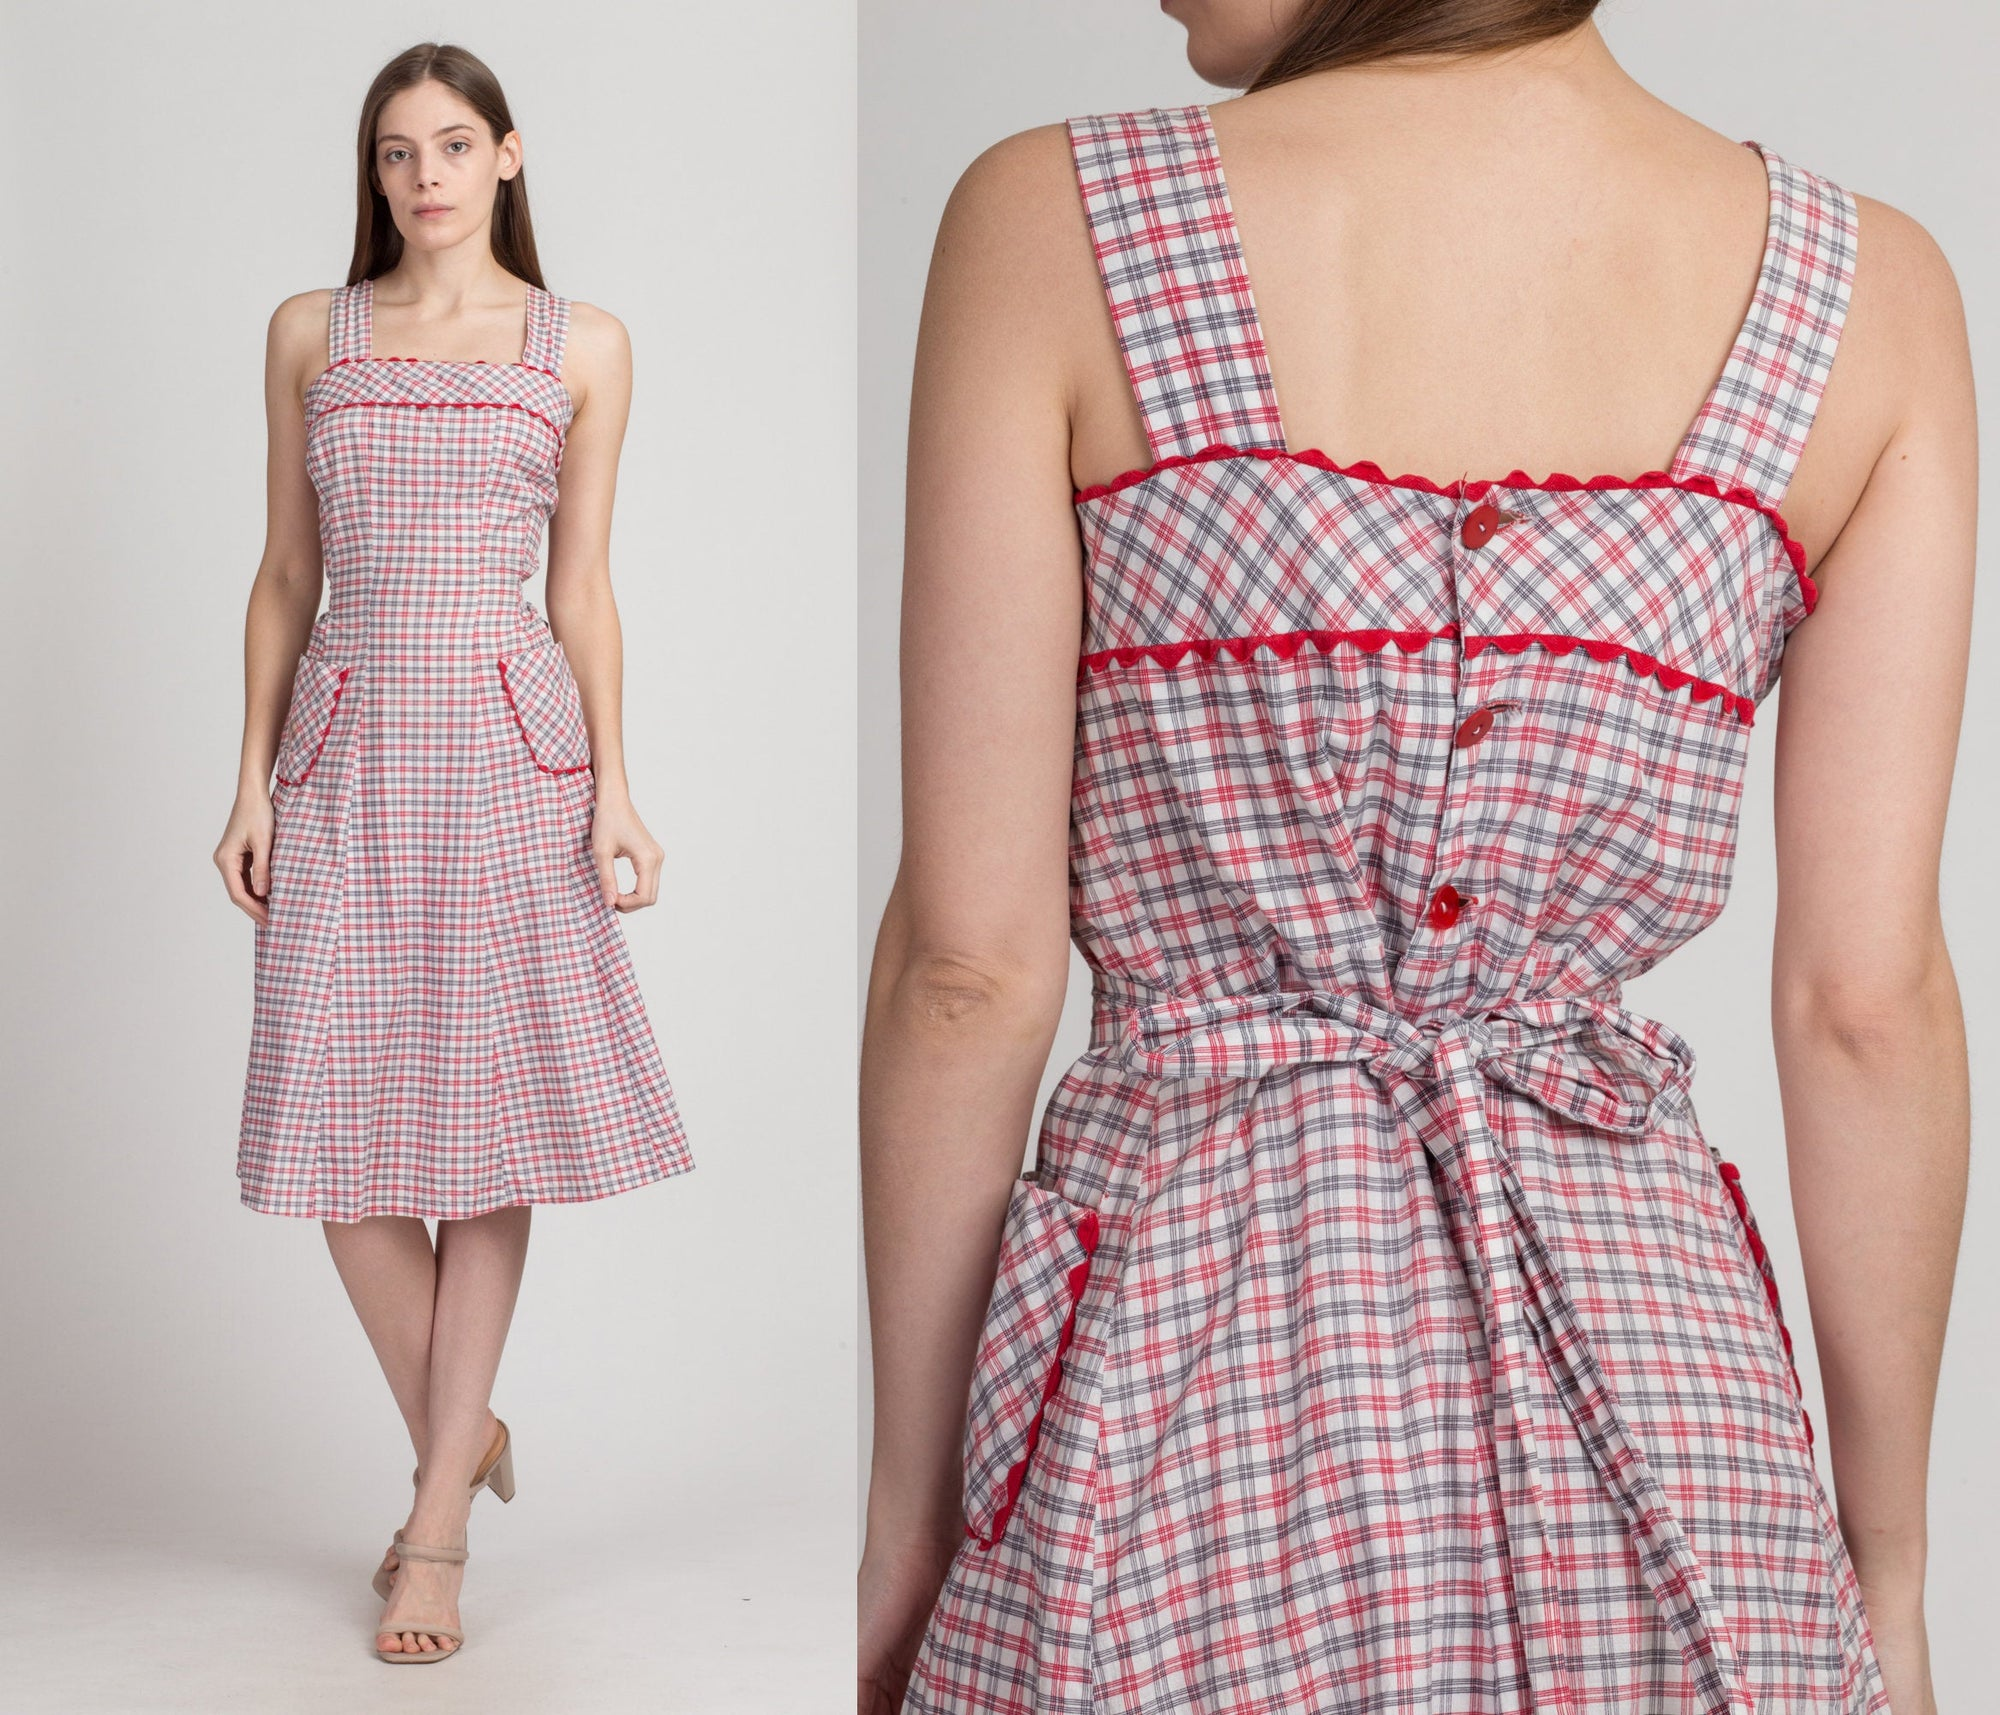 Vintage 40s 50s Red Plaid Day Dress - Large | 1940s Boho Fit & Flare Pocket Sundress